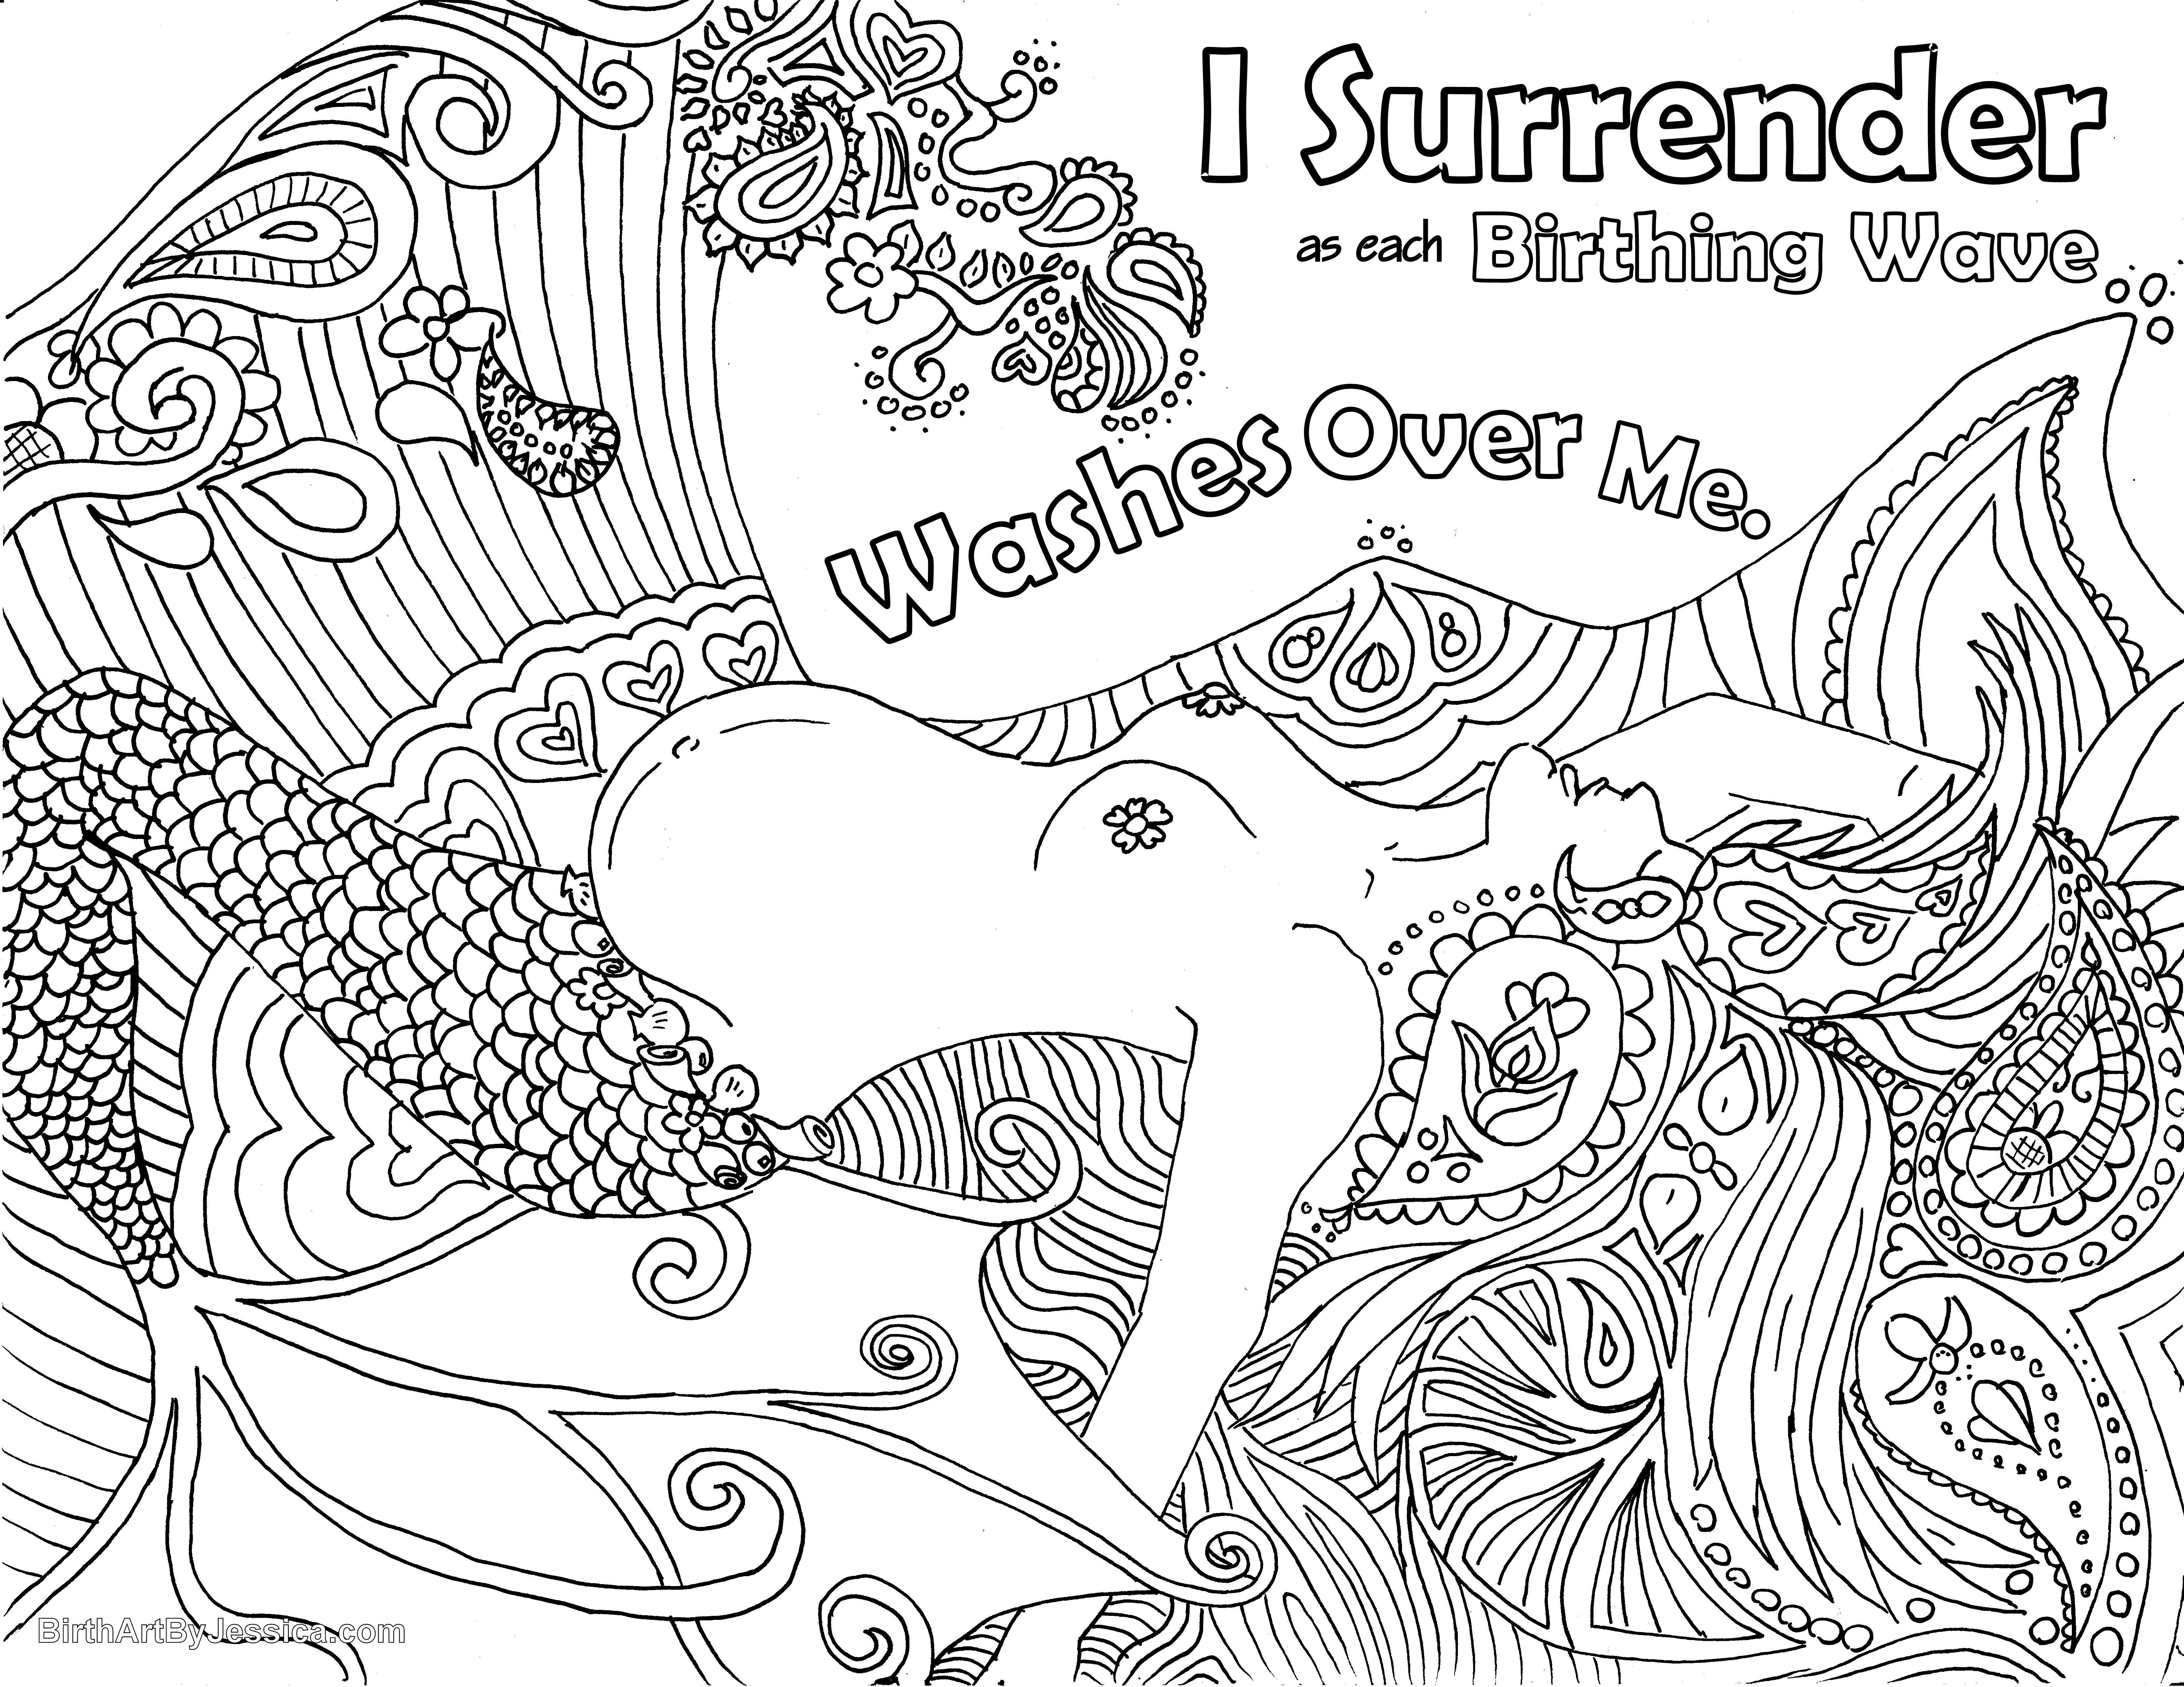 Birth Affirmation Coloring Page Free Printable Mermaid Water Gallery Birth Affirmations Birth Art Mermaid Coloring Pages